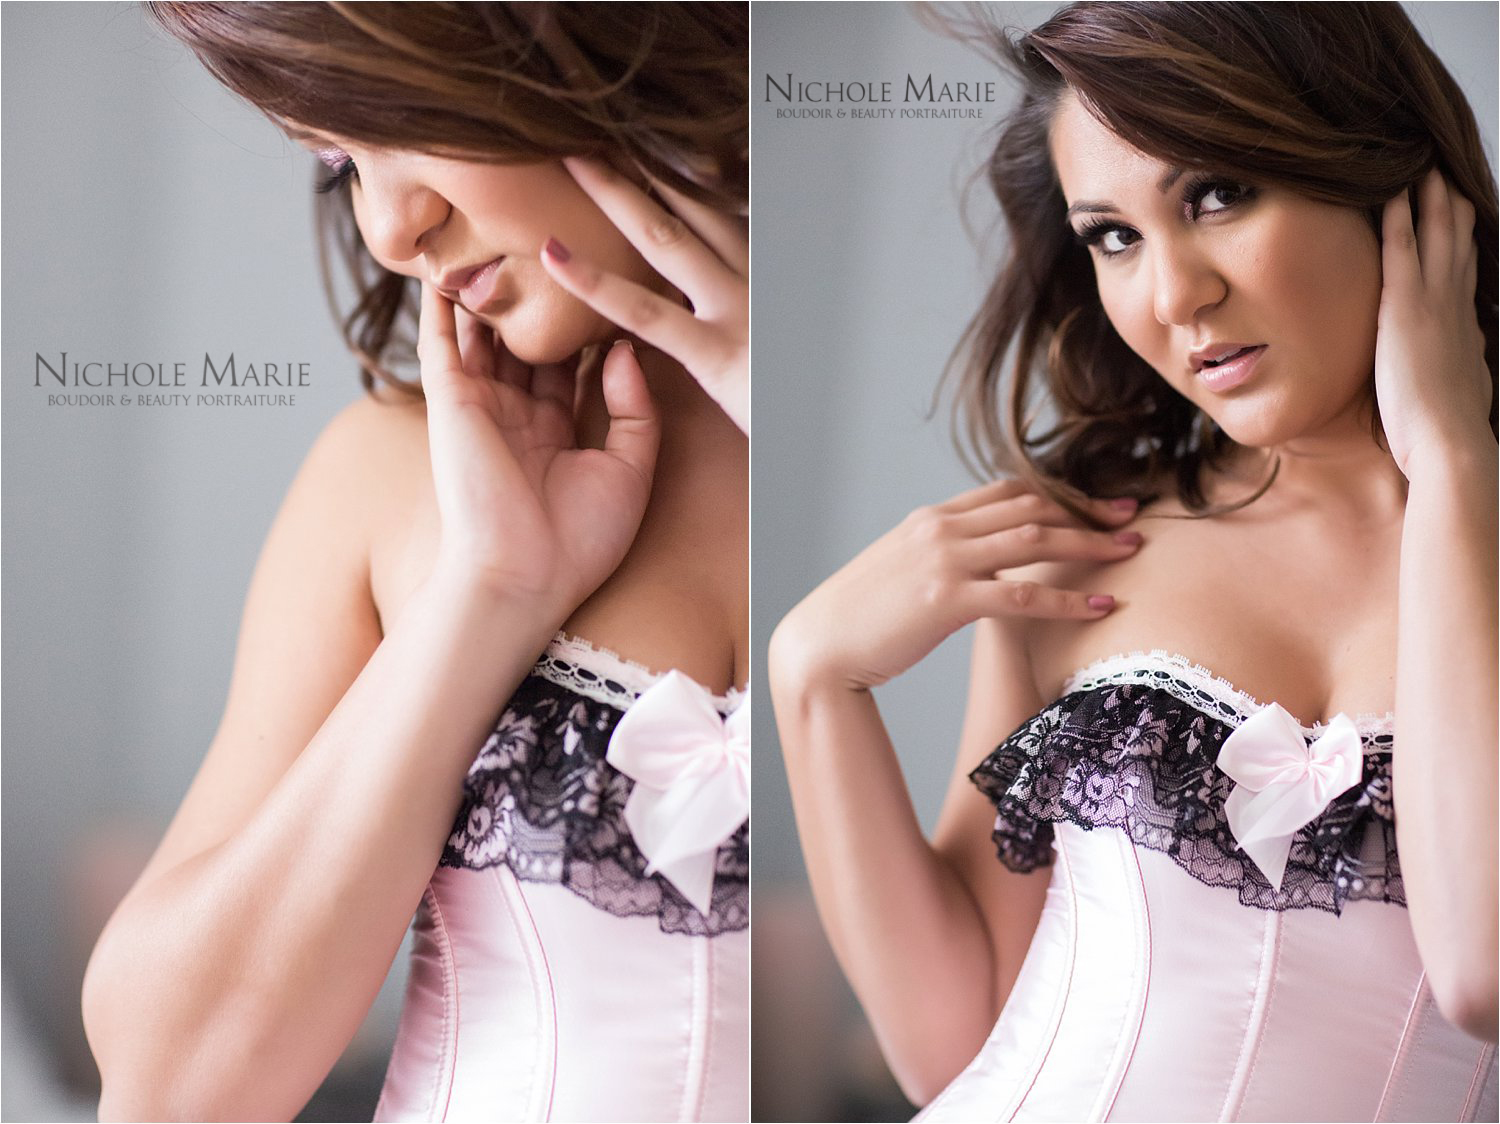 WHY YOU NEED BOUDOR- INTRODUCING MISS M | SEBASTIAN, FL BOUDOIR PHOTOGRAPHER | NICHOLE MARIE BOUDOIR WHY YOU NEED BOUDOR- INTRODUCING MISS M | SEBASTIAN, FL BOUDOIR PHOTOGRAPHER | NICHOLE MARIE BOUDOIR